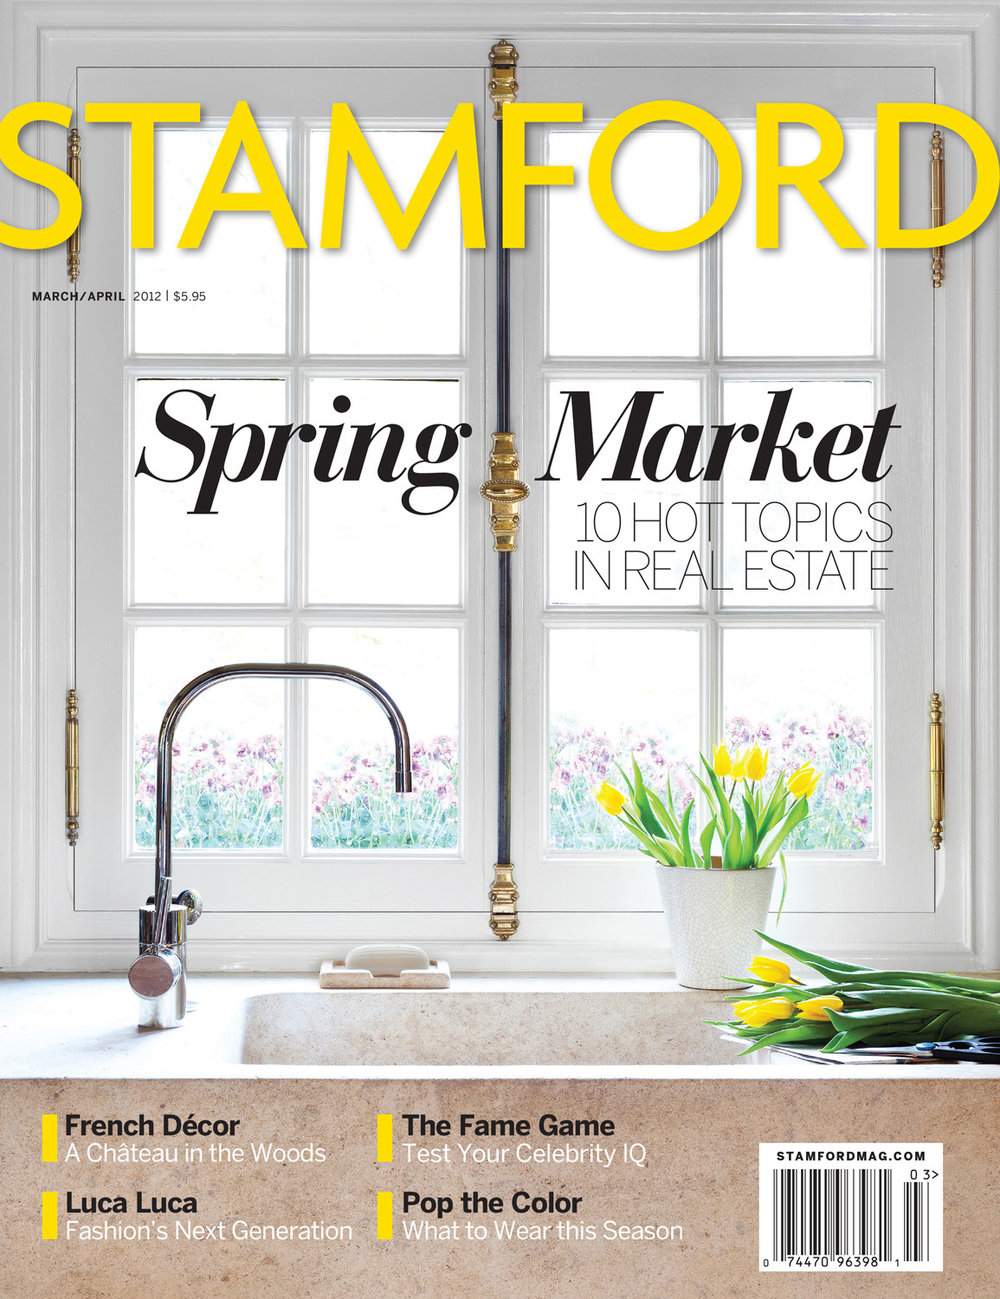 Stamford Magazine March/April 2012